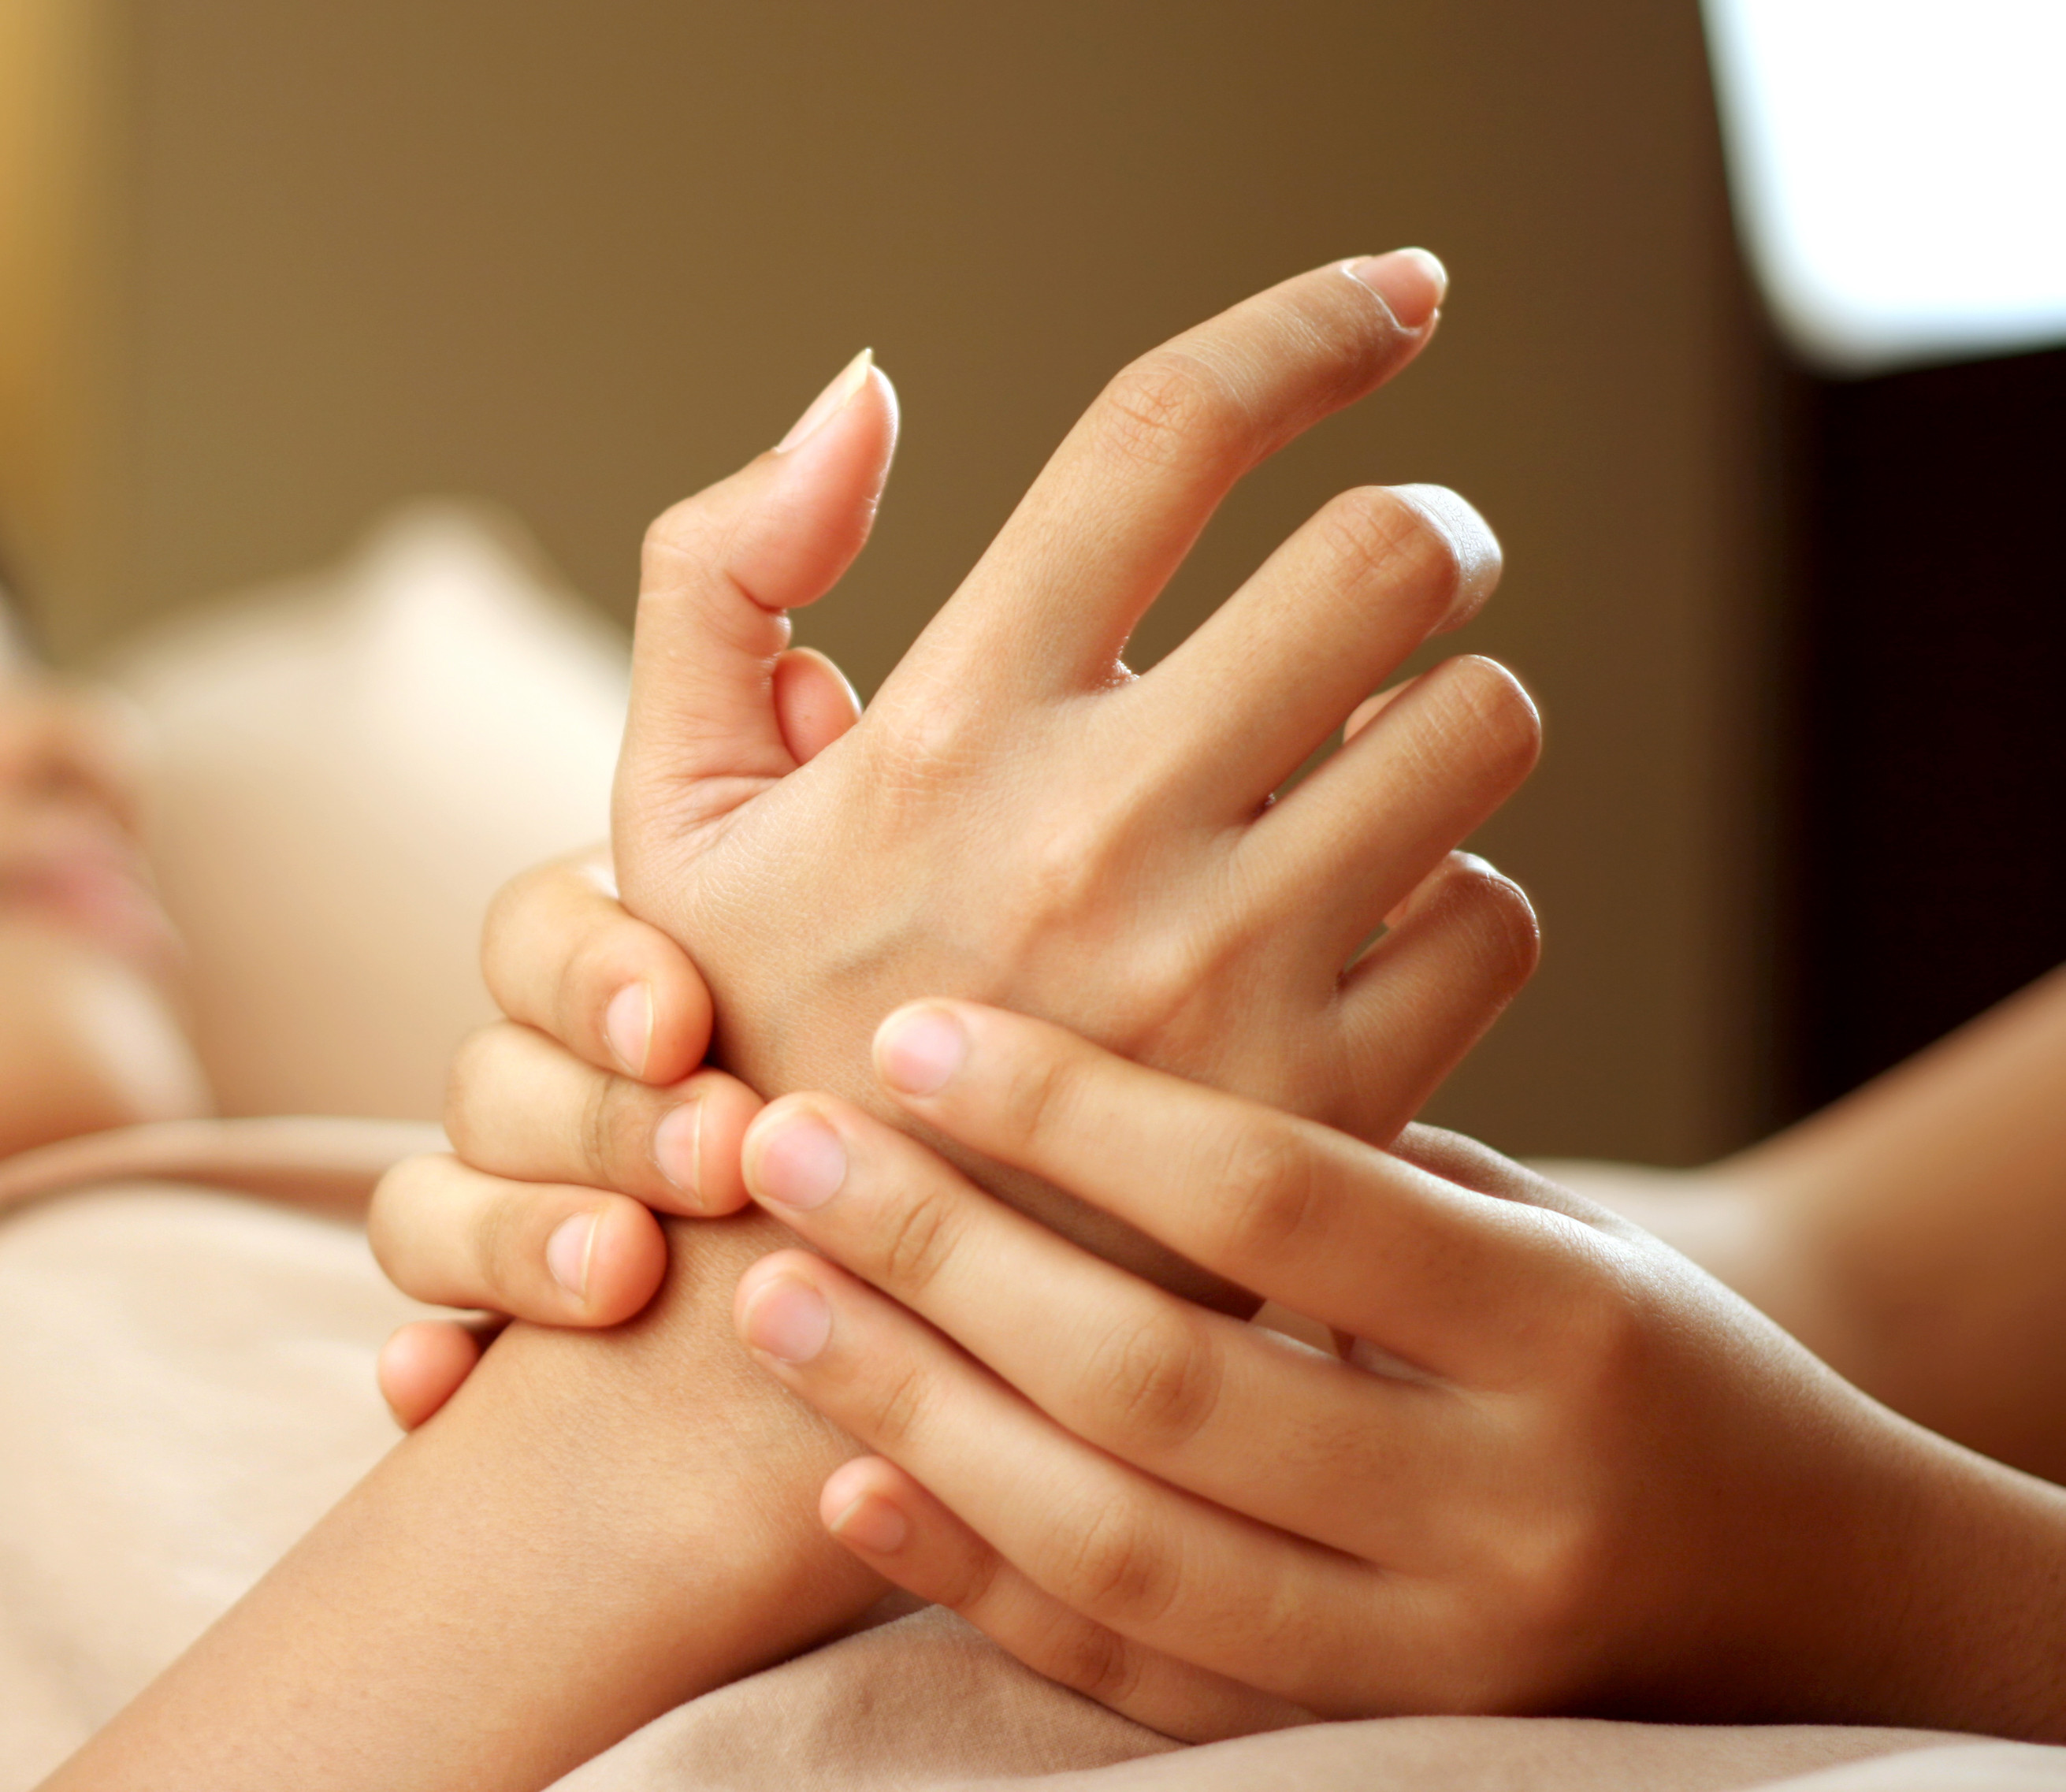 hand massage 3 - Deluxe Hand Treatment Gift Voucher